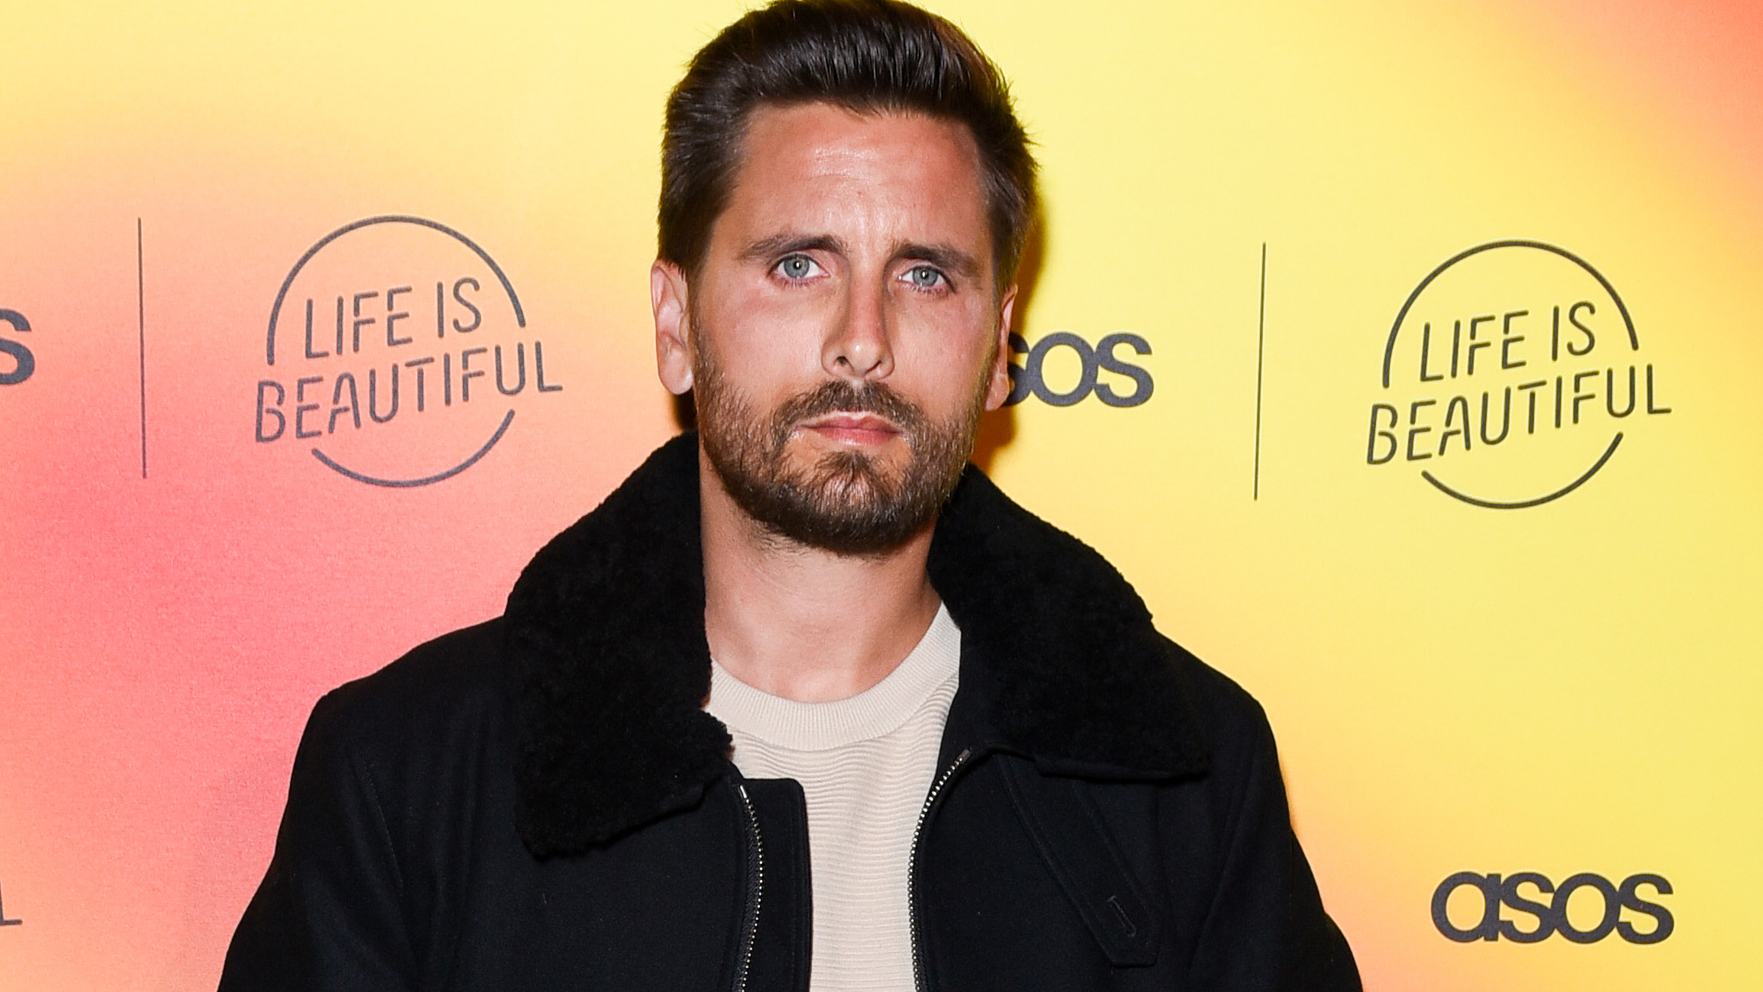 Scott Disick explains why he dates much younger women on 'KUWTK' reunion